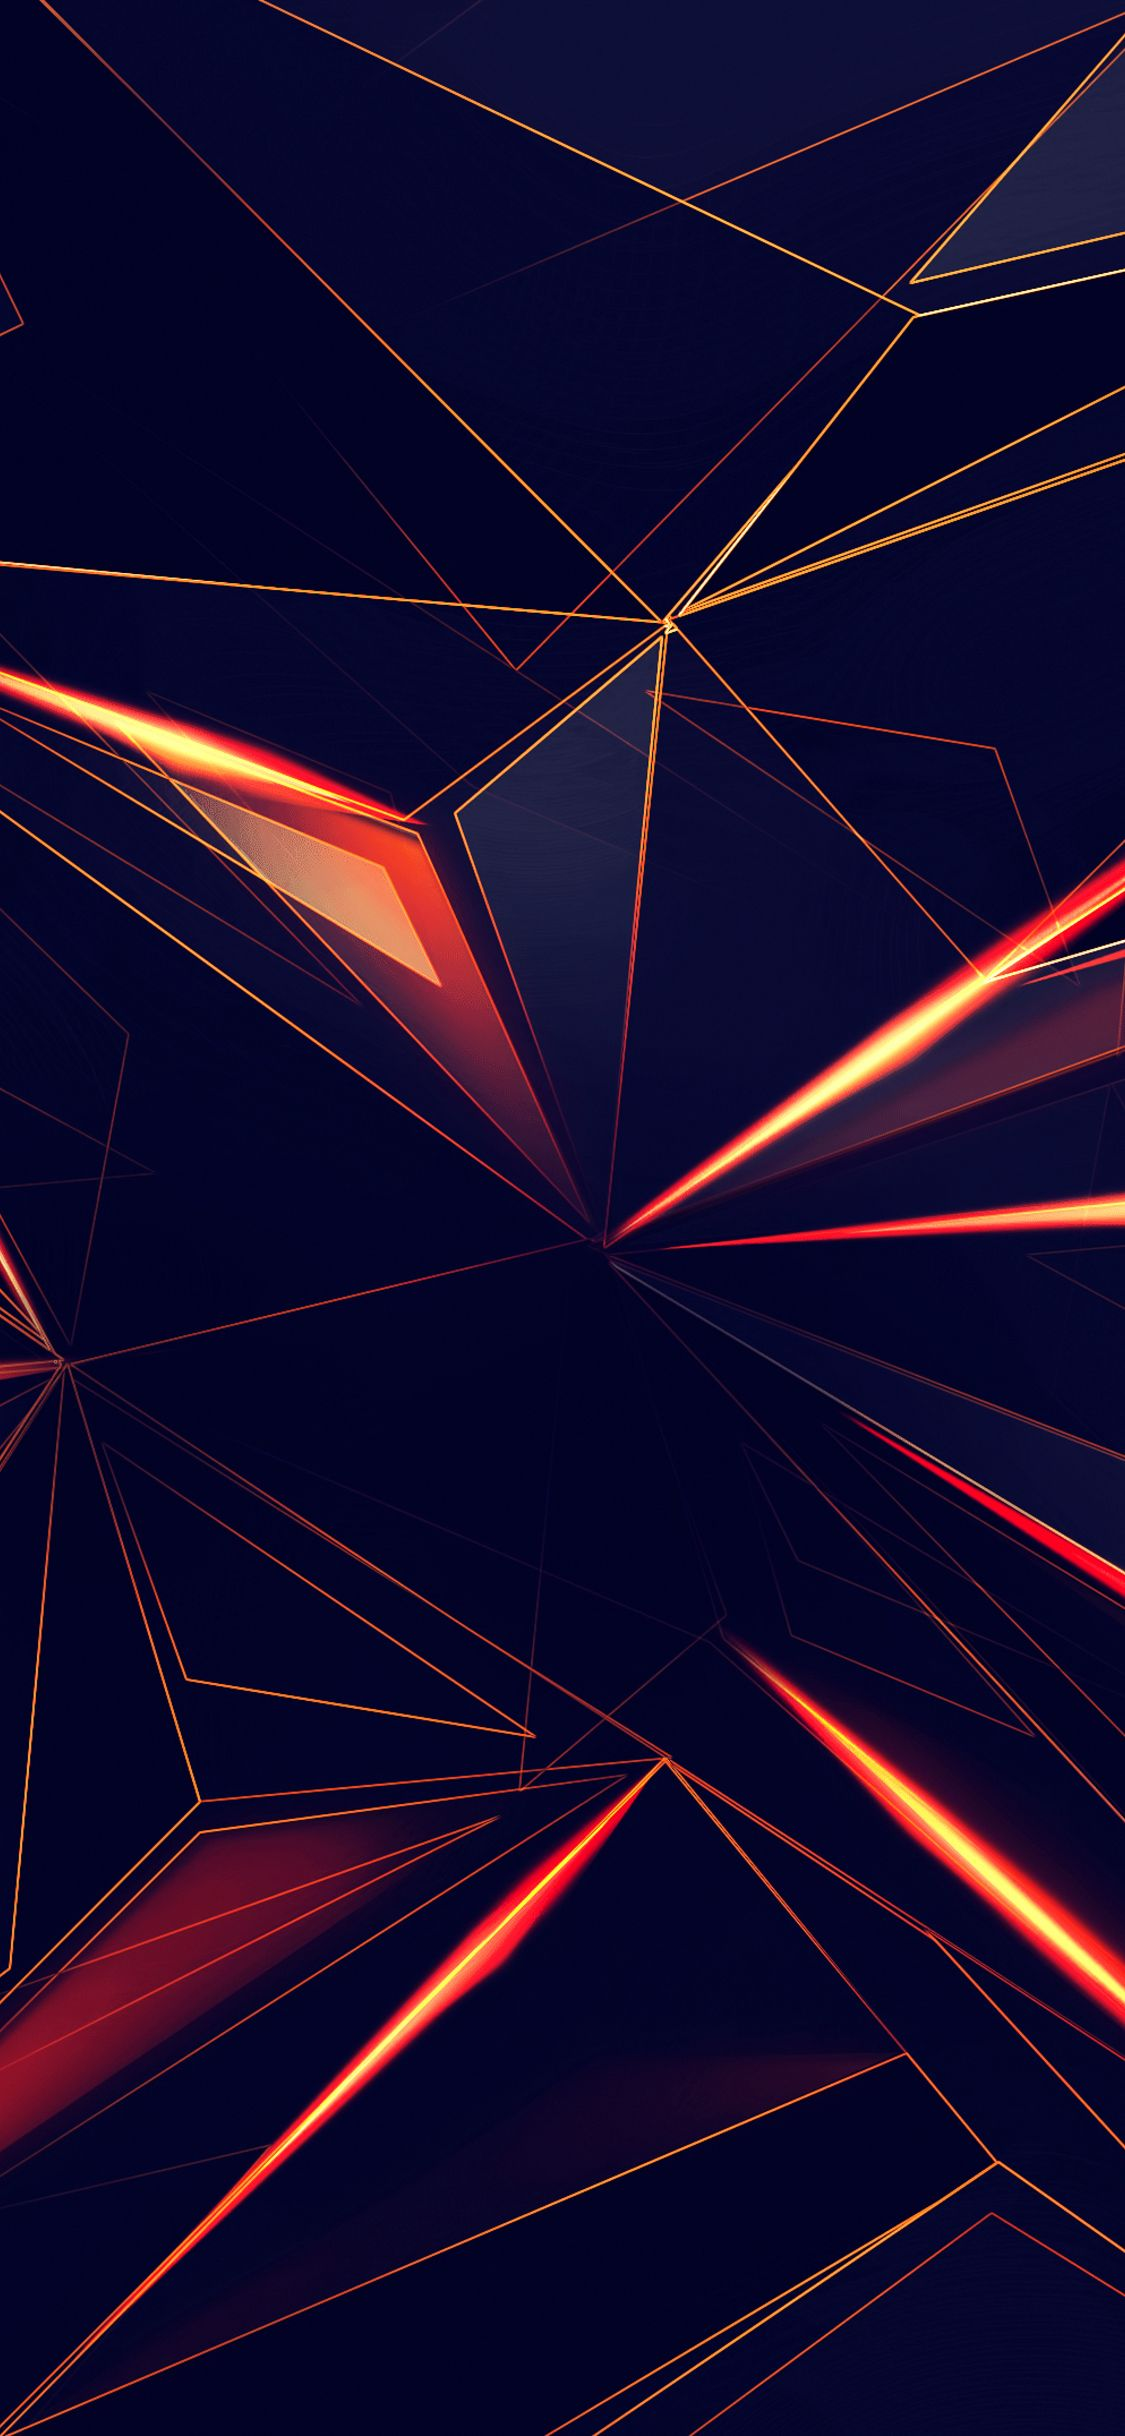 3d Shapes Abstract Lines 4k In 1125x2436 Resolution In 2019